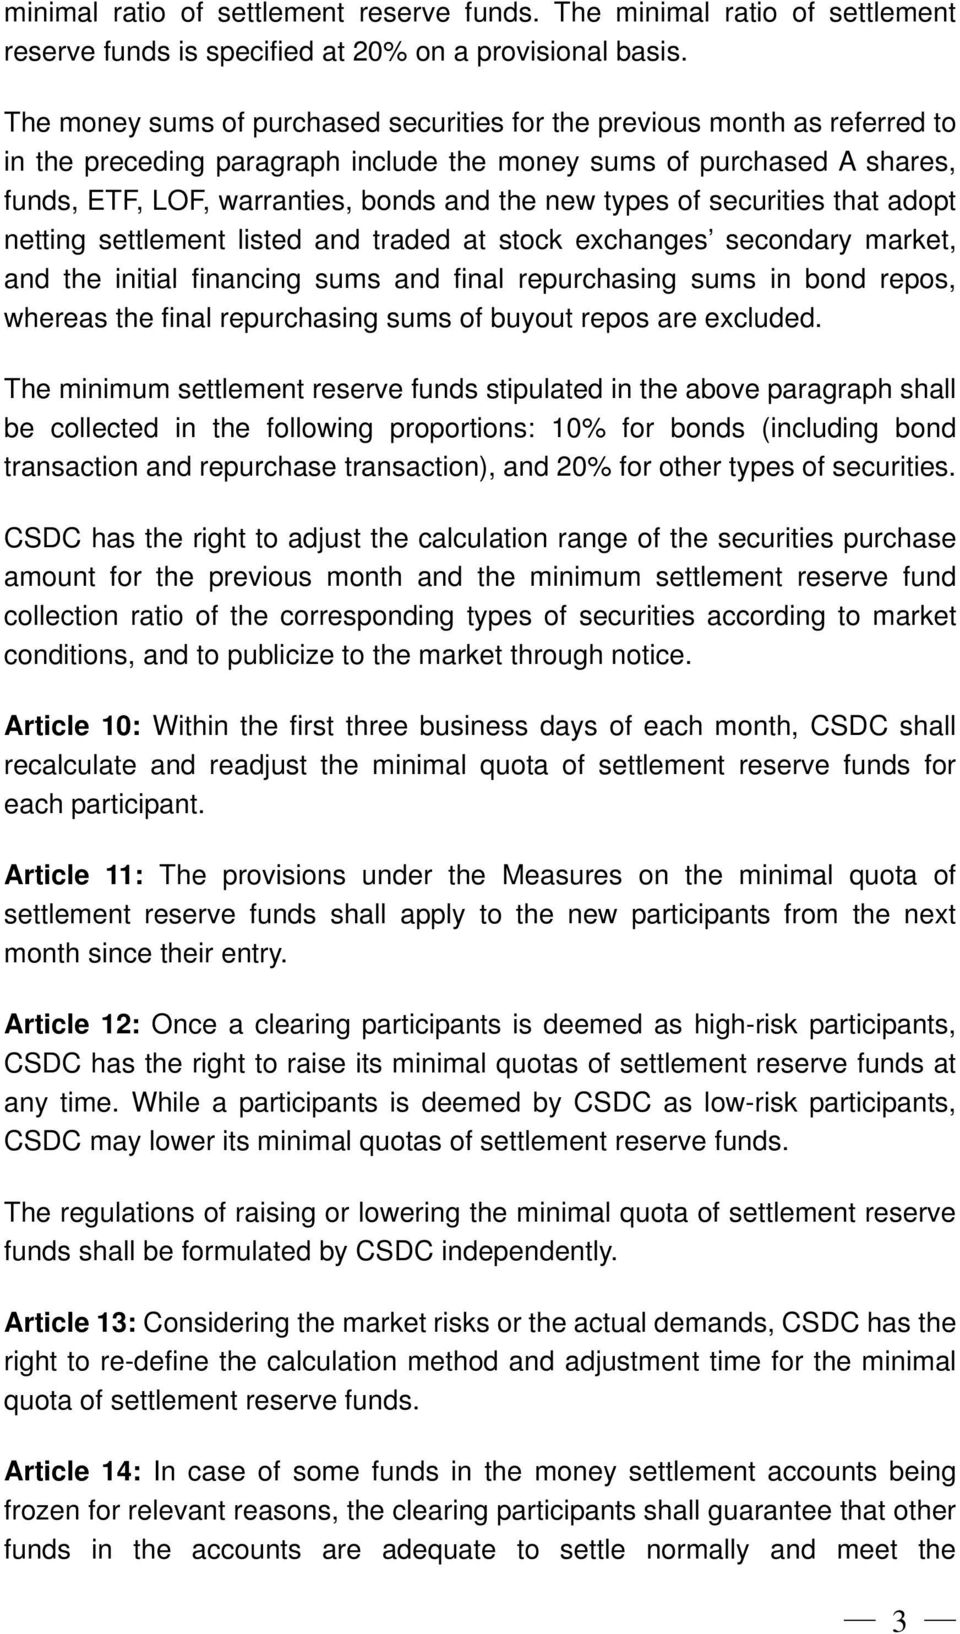 types of securities that adopt netting settlement listed and traded at stock exchanges secondary market, and the initial financing sums and final repurchasing sums in bond repos, whereas the final